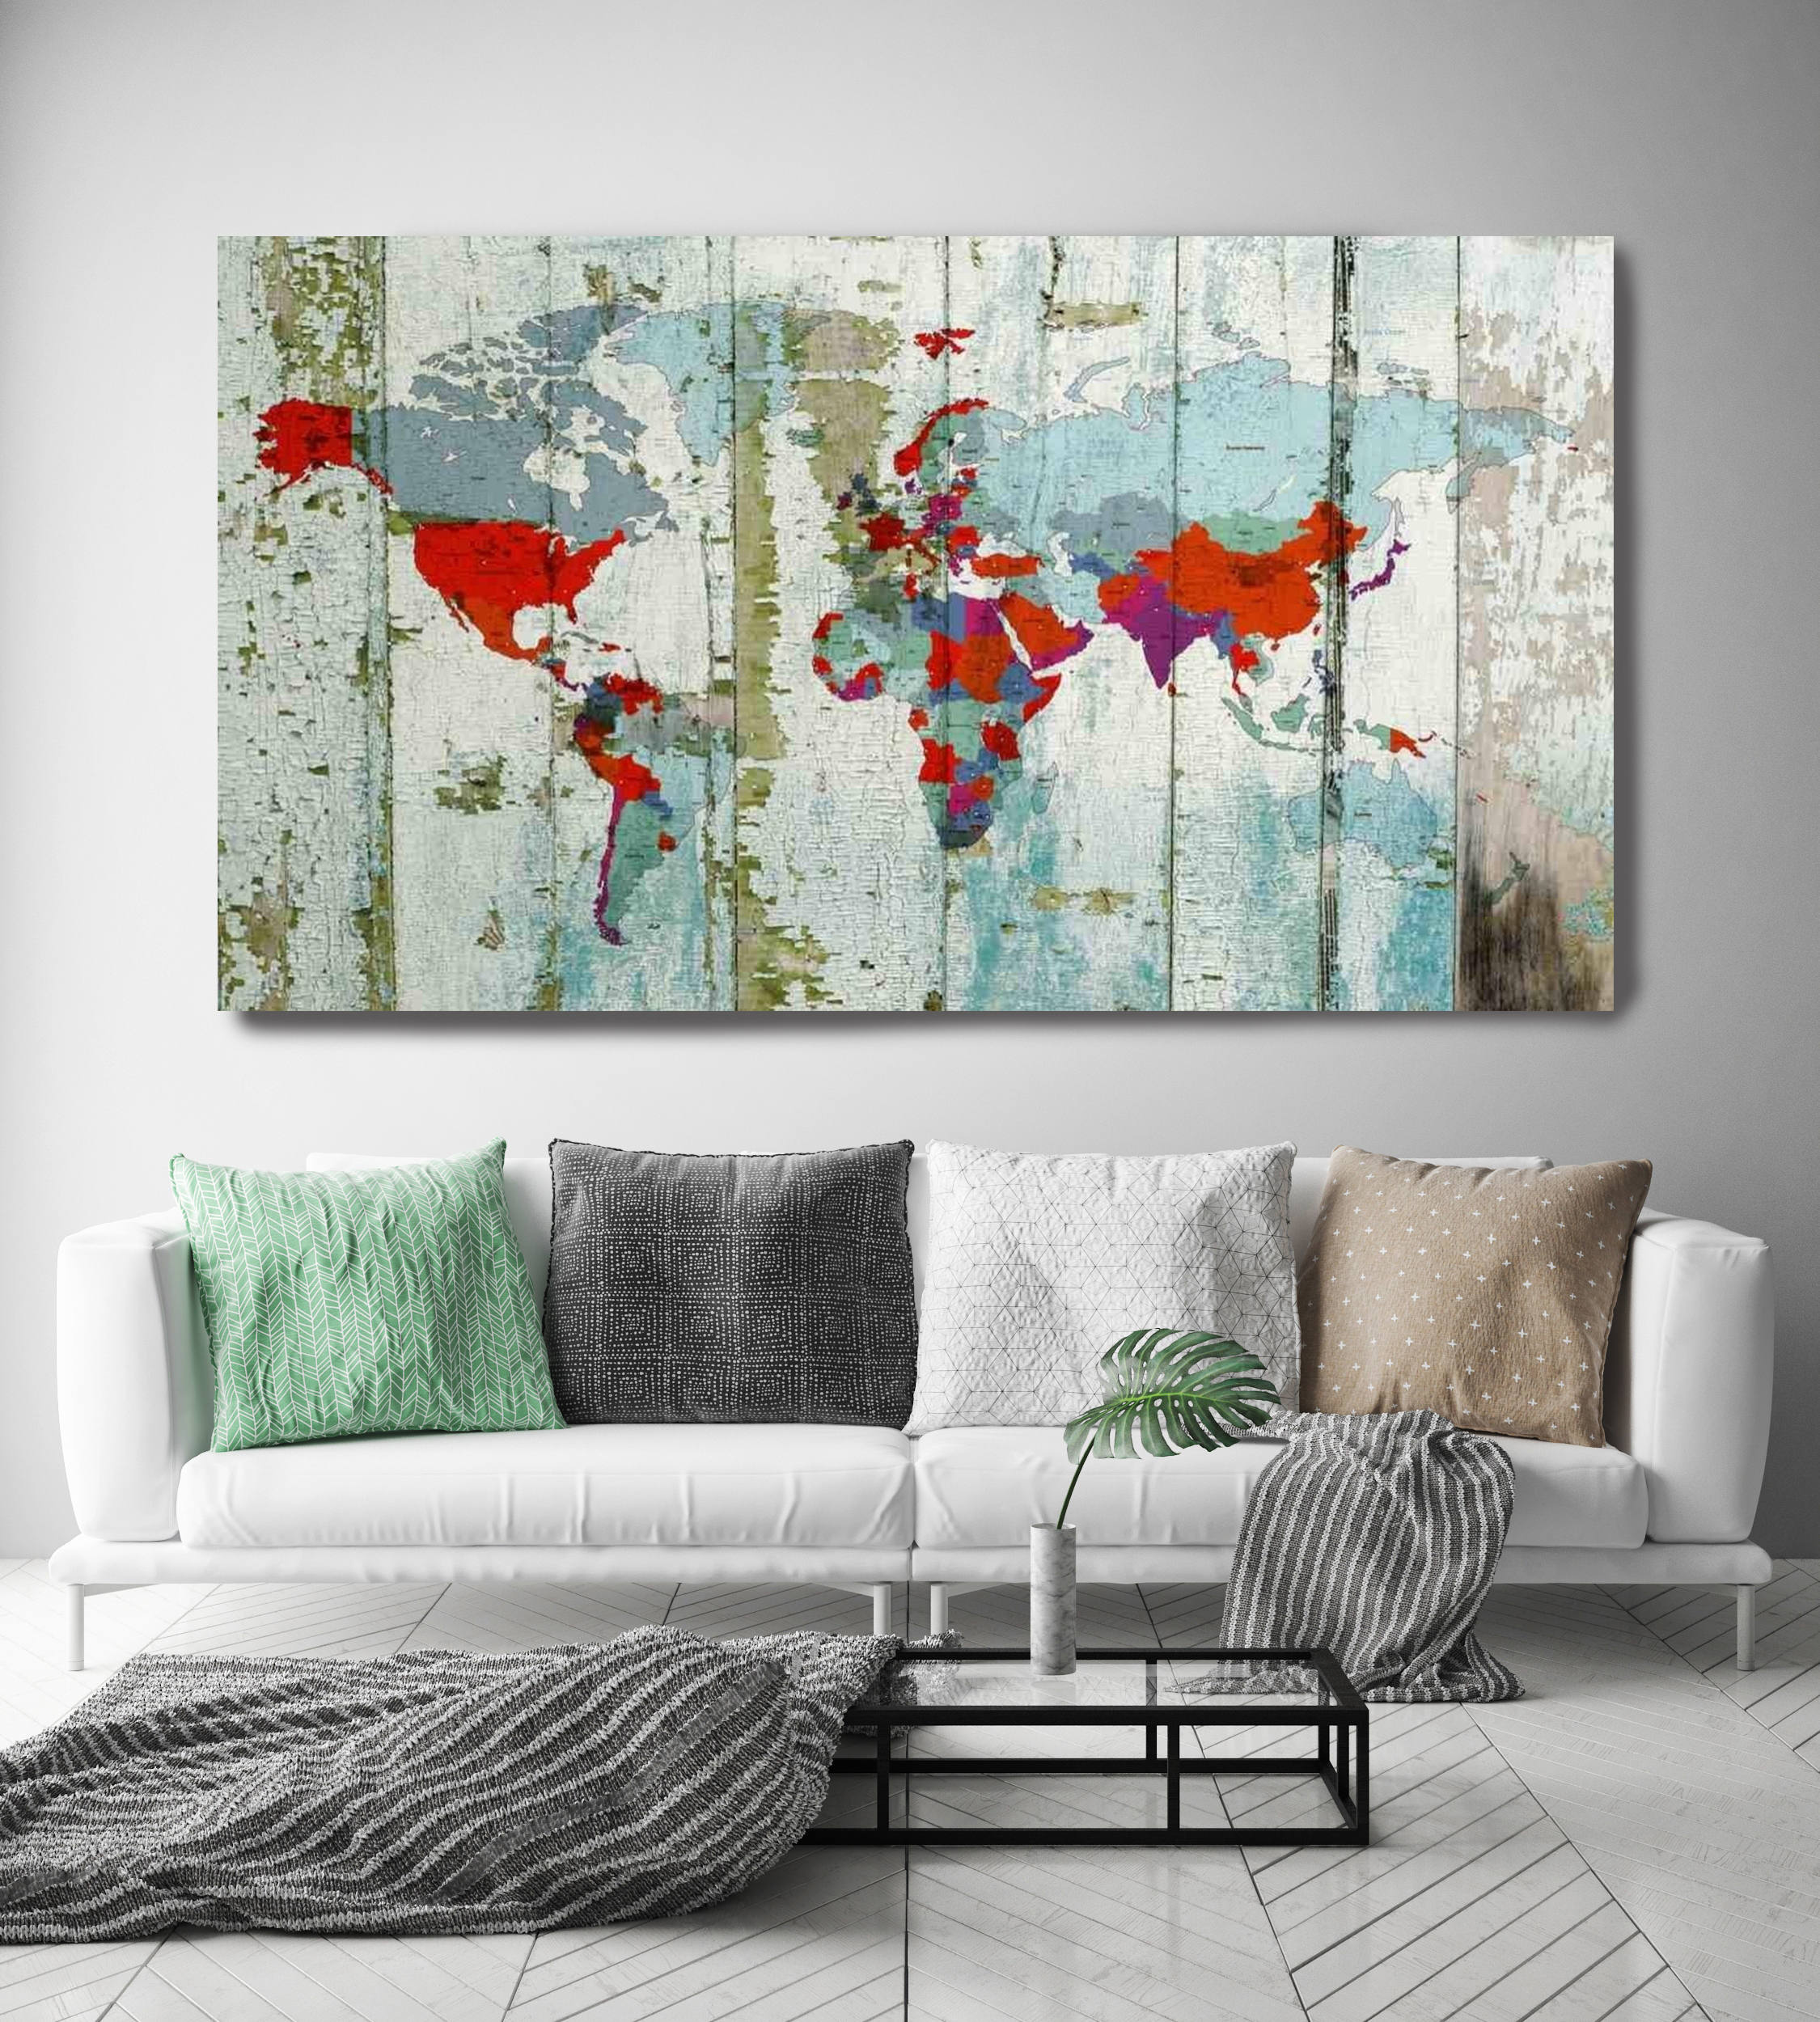 World Map on wooden planks. Vintage World Map. Large Canvas ...